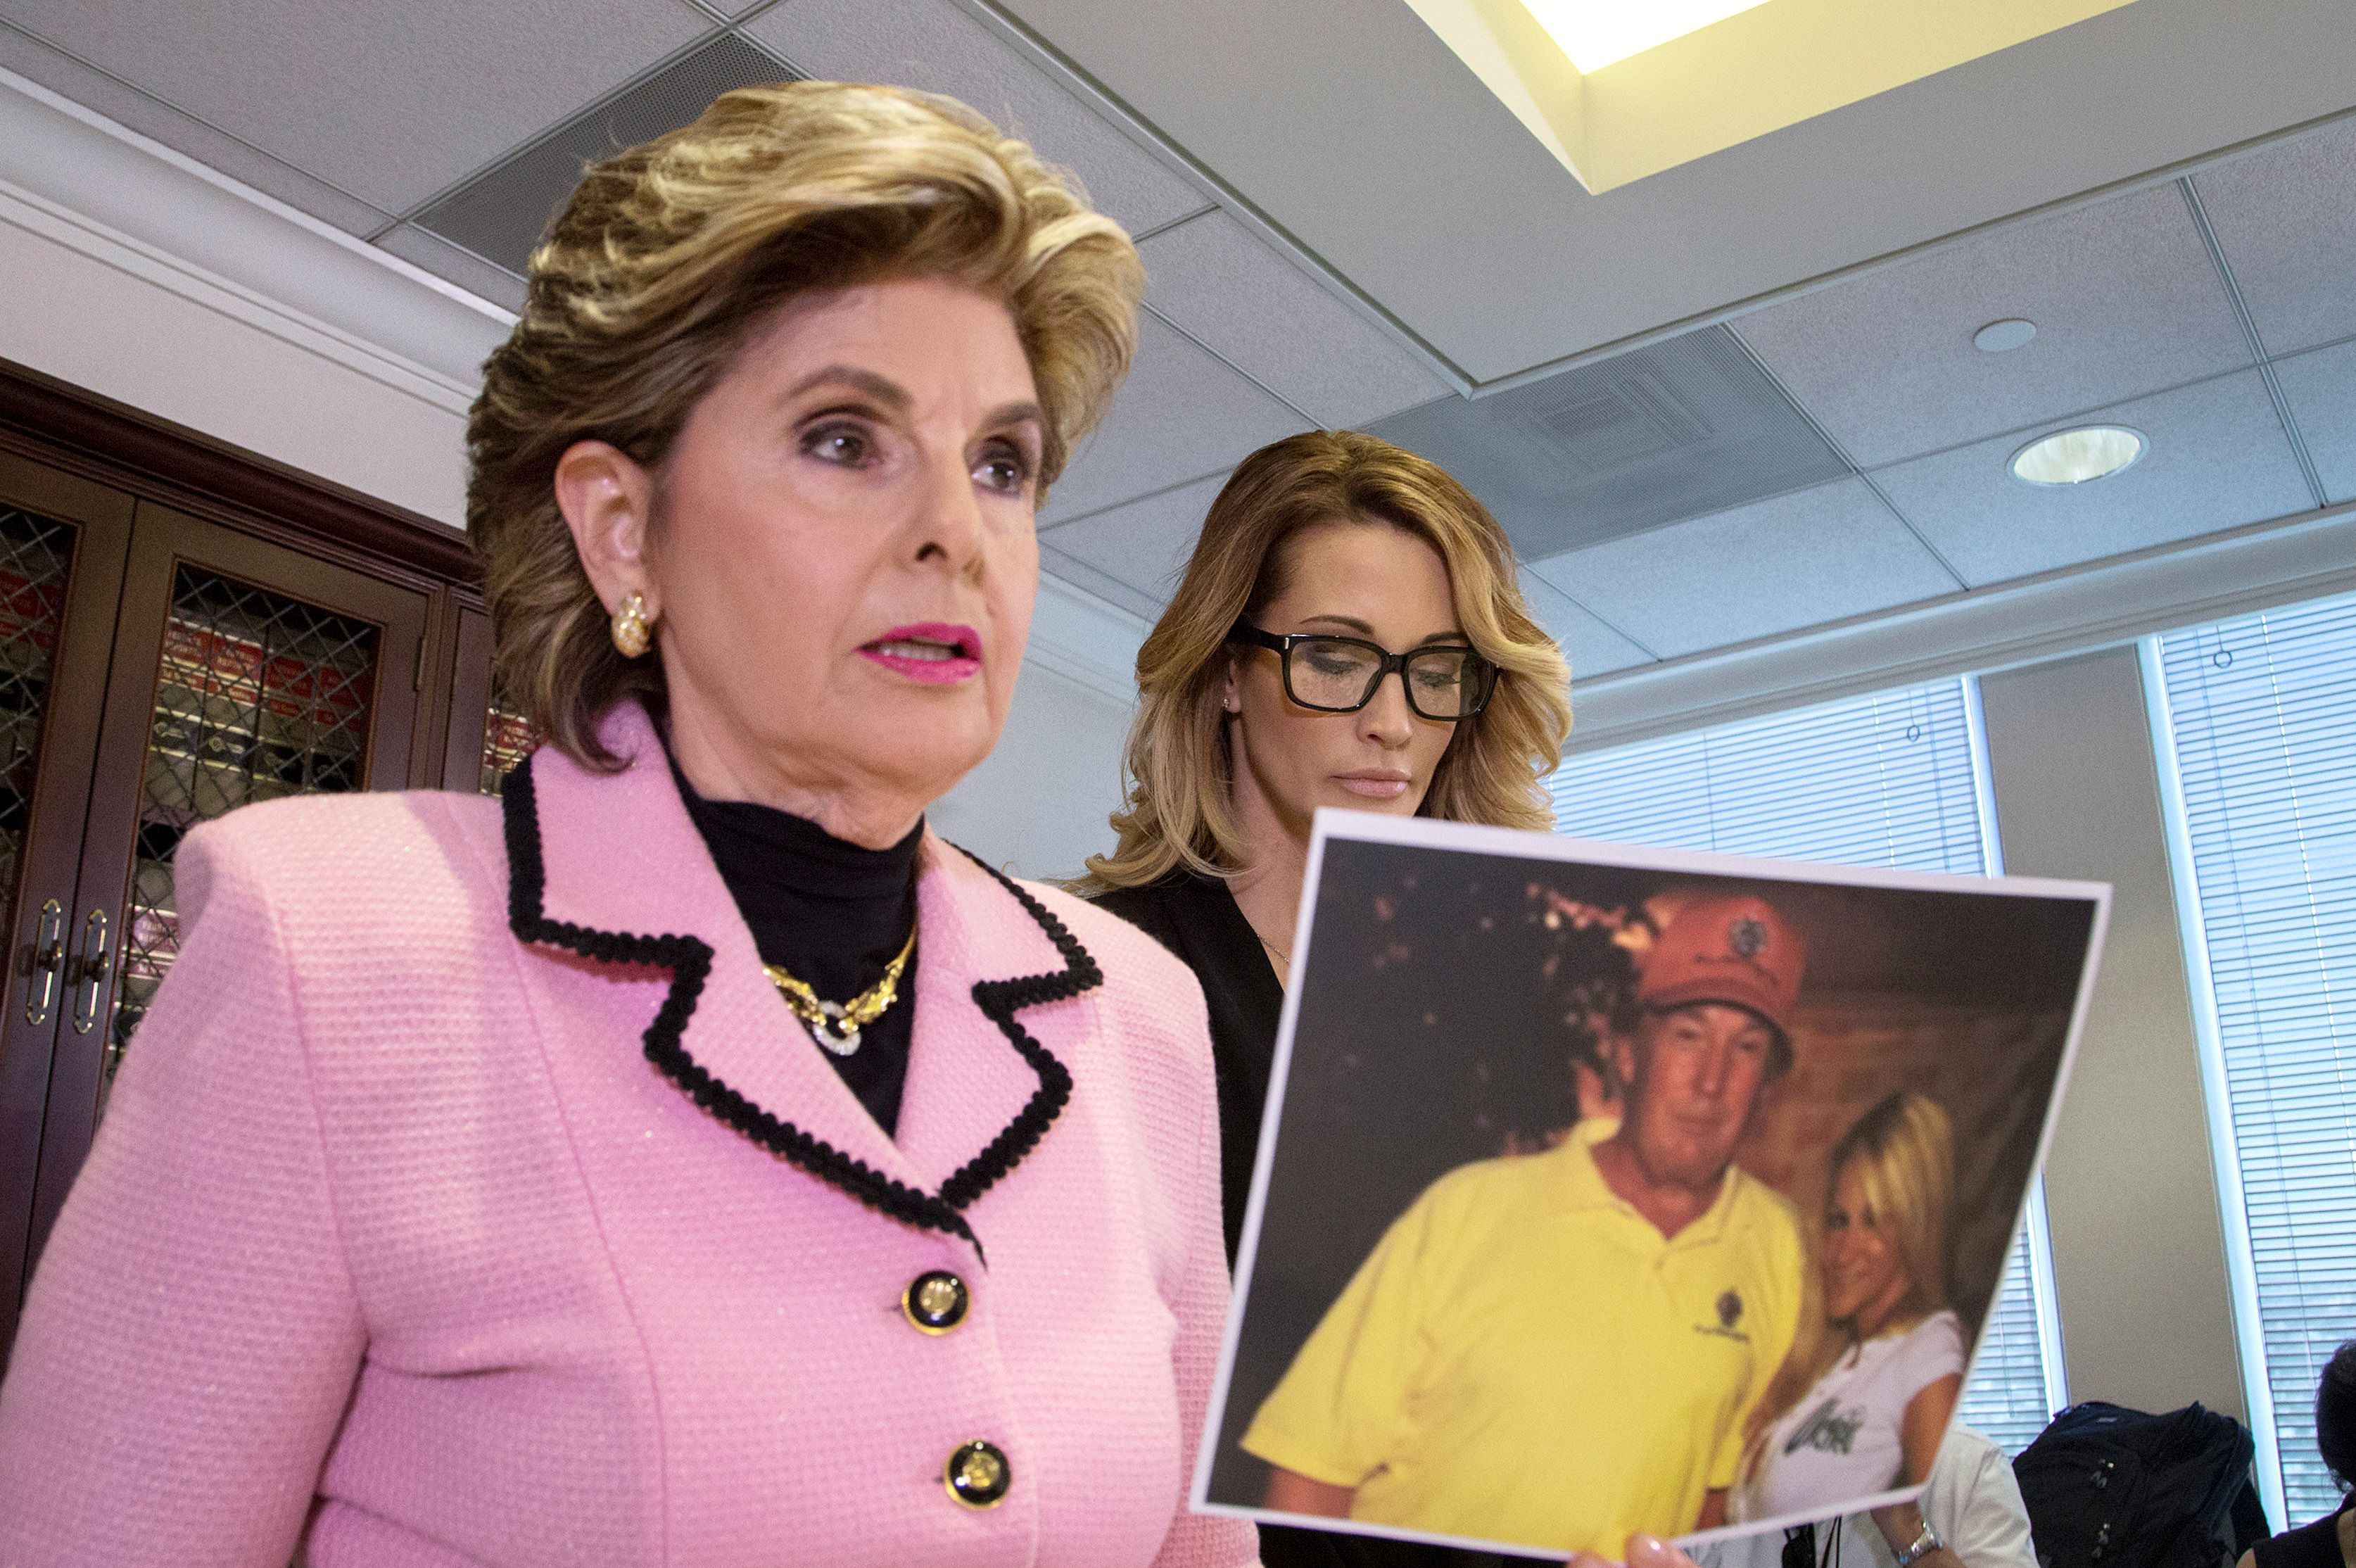 Gloria Allred Holds Press Conference Announcing New Allegations of Sexual Misconduct Against Donald Trump.